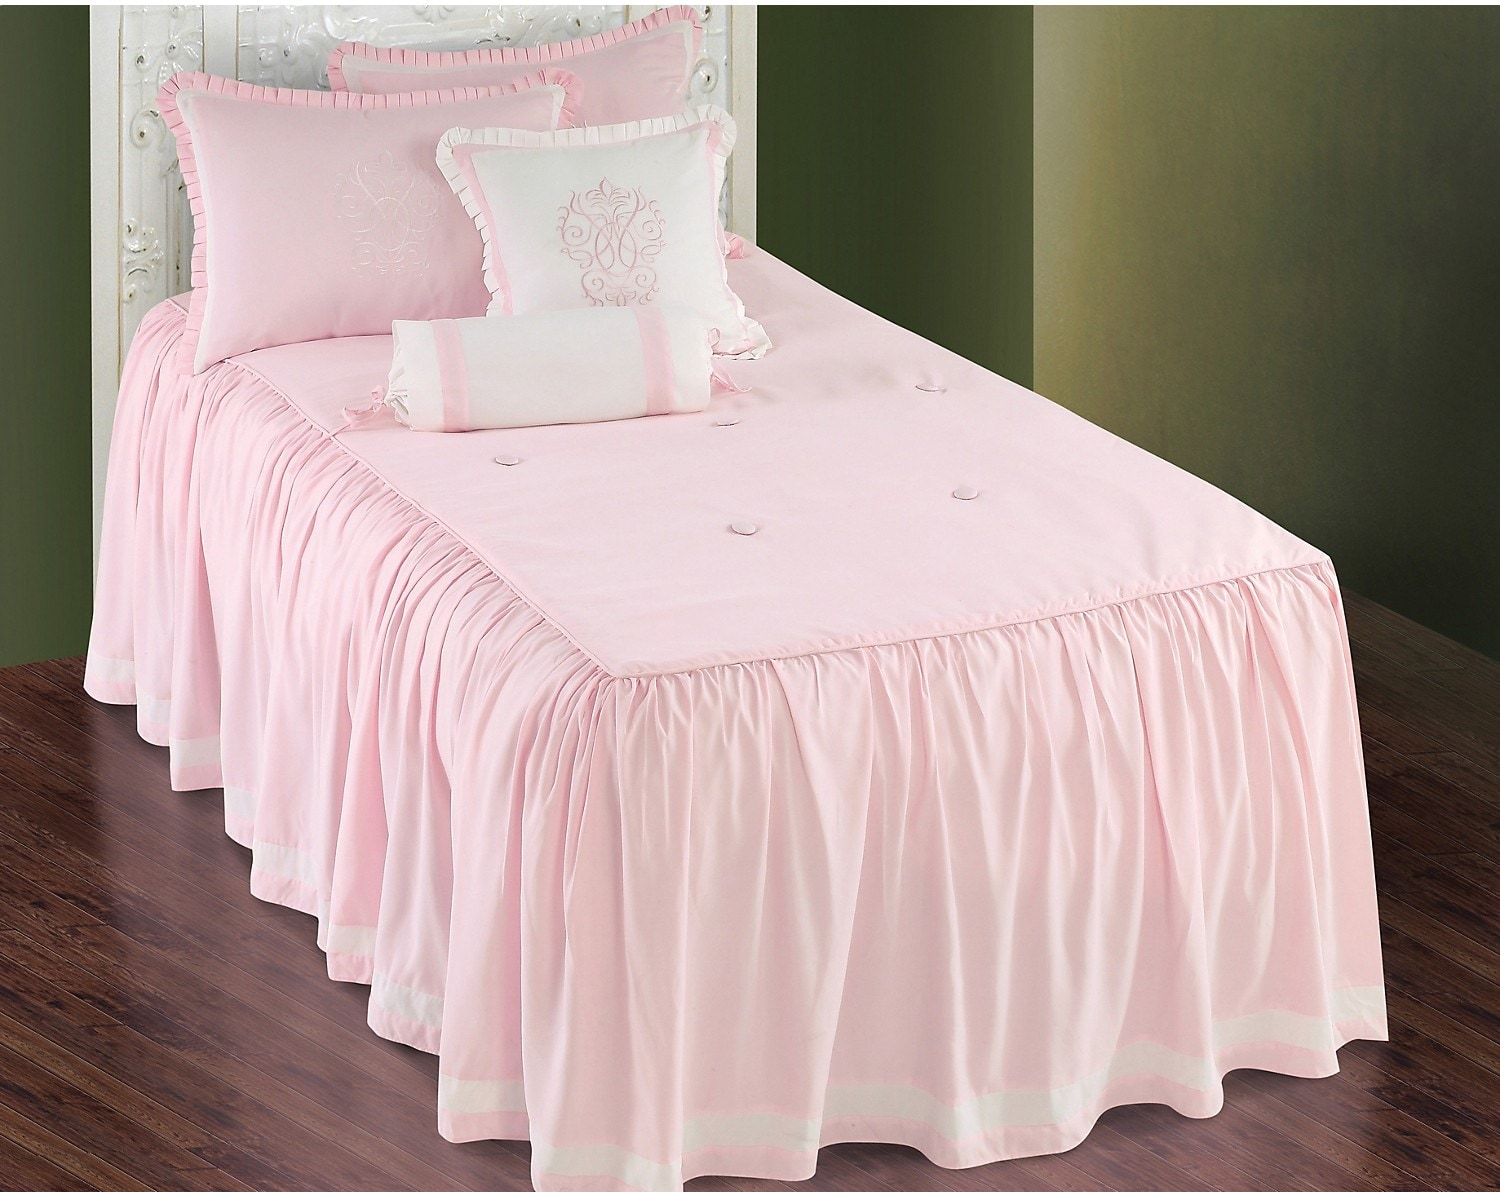 Accent and Occasional Furniture - Daphne 5 Piece Full Comforter Set - Pink & White